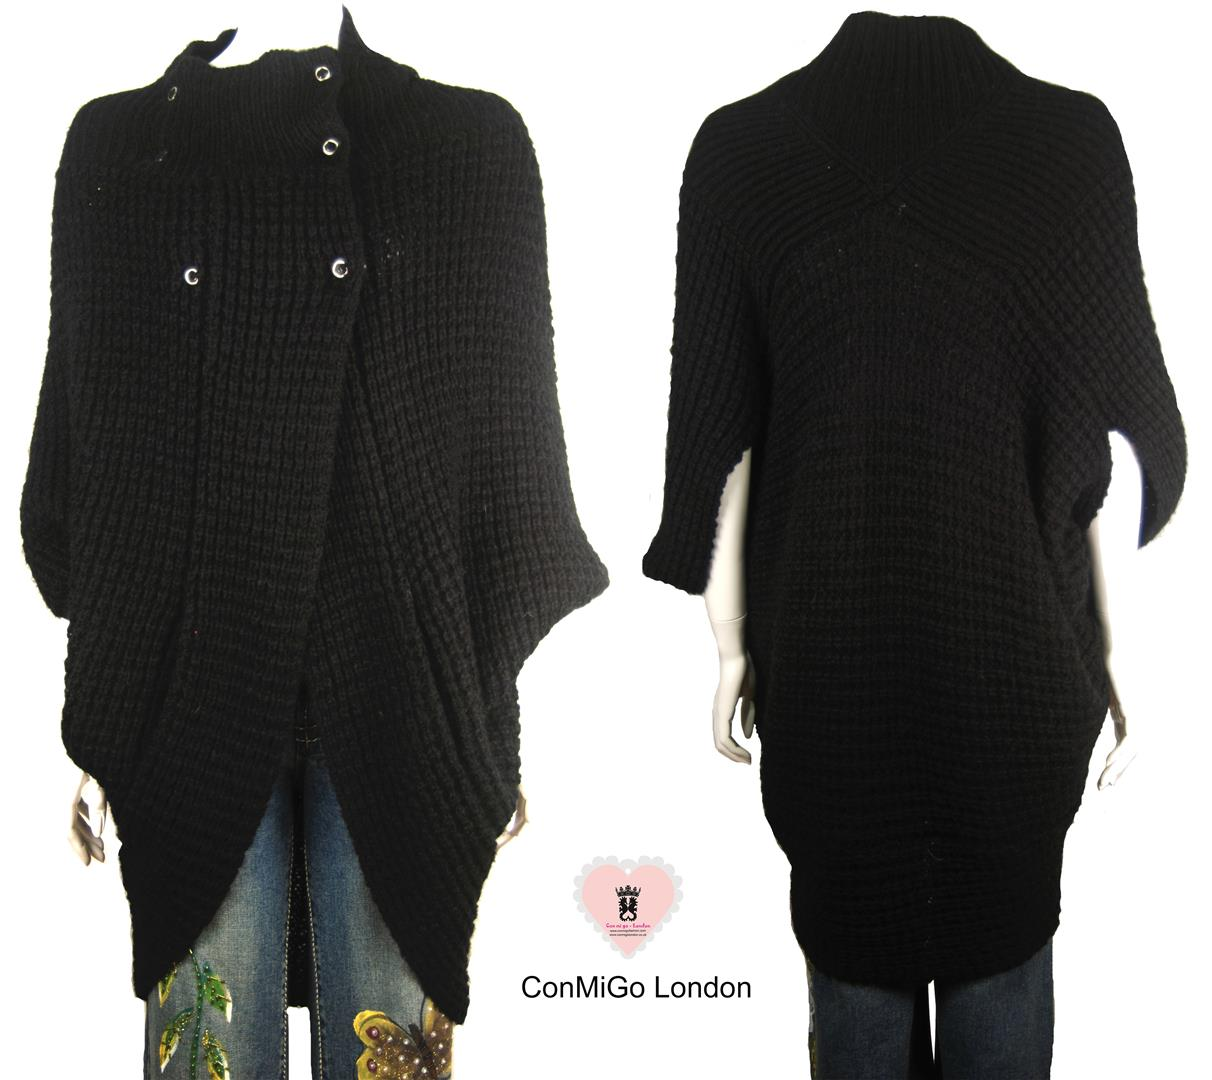 http://www.conmigolondon.co.uk/ekmps/shops/conmigo/images/1b.-conmigo-214-wool-coat-black-12863-p.jpg